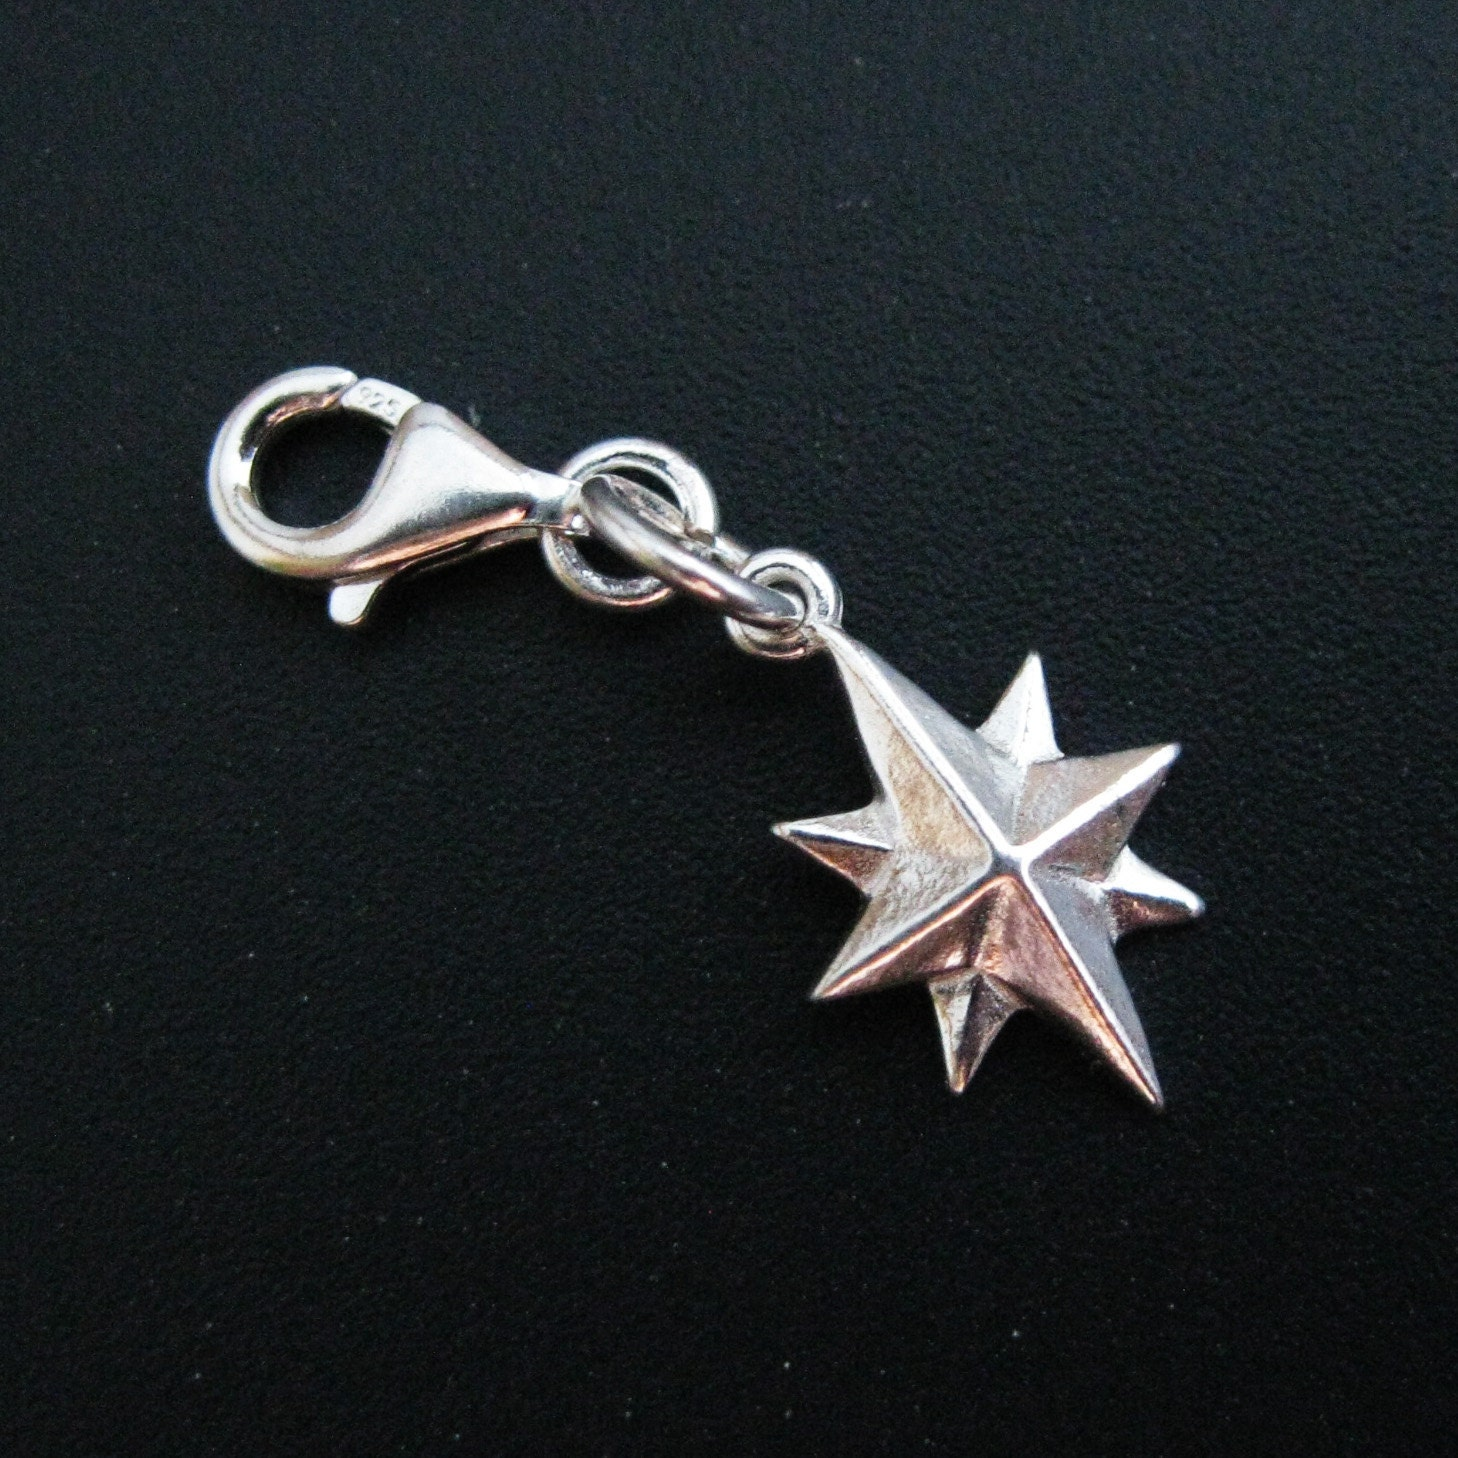 Clip on Charms for Bracelet 925 Silver Charm with Clasp Silver